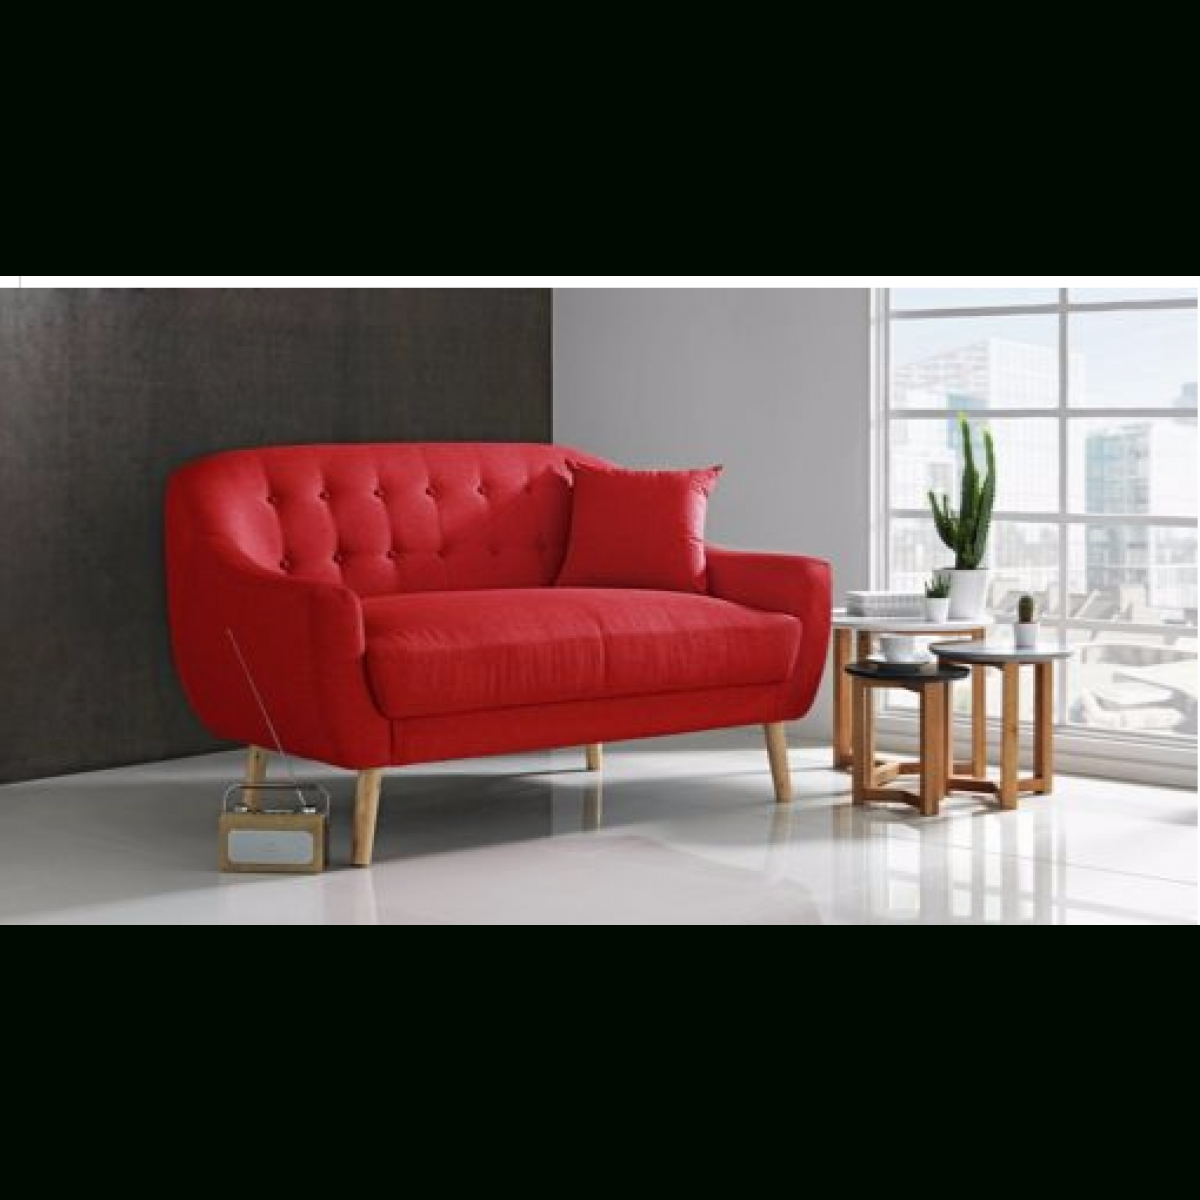 Widely Used Hygena Lexie Retro Compact Fabric 2 Seater Sofa – Poppy Red Pertaining To Retro Sofas (View 2 of 15)